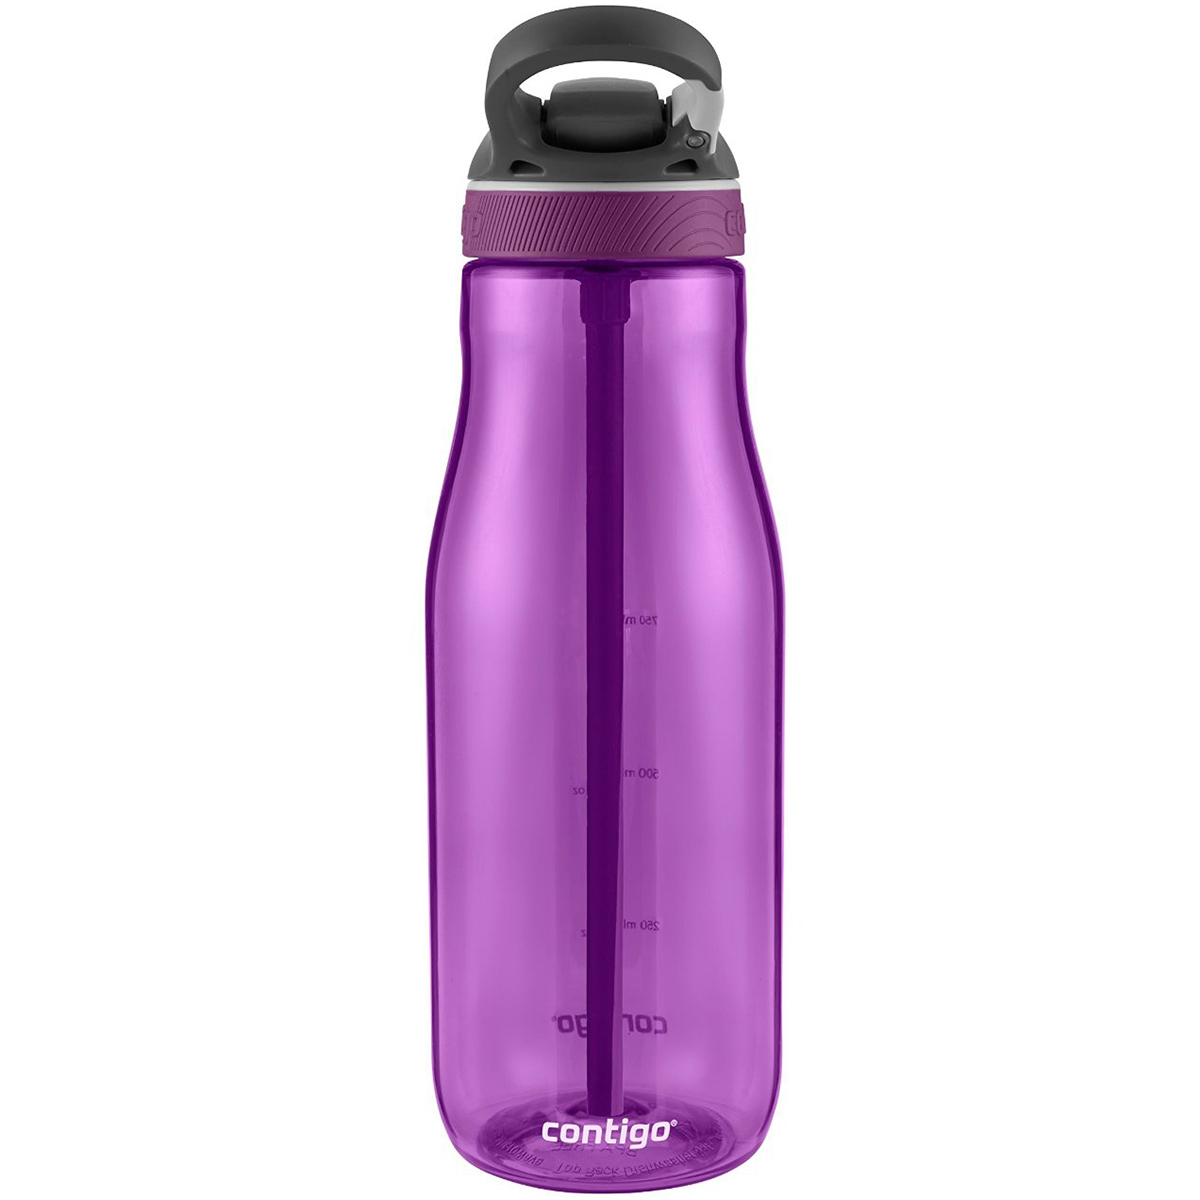 Contigo-40-oz-Ashland-Autospout-Water-Bottle thumbnail 17